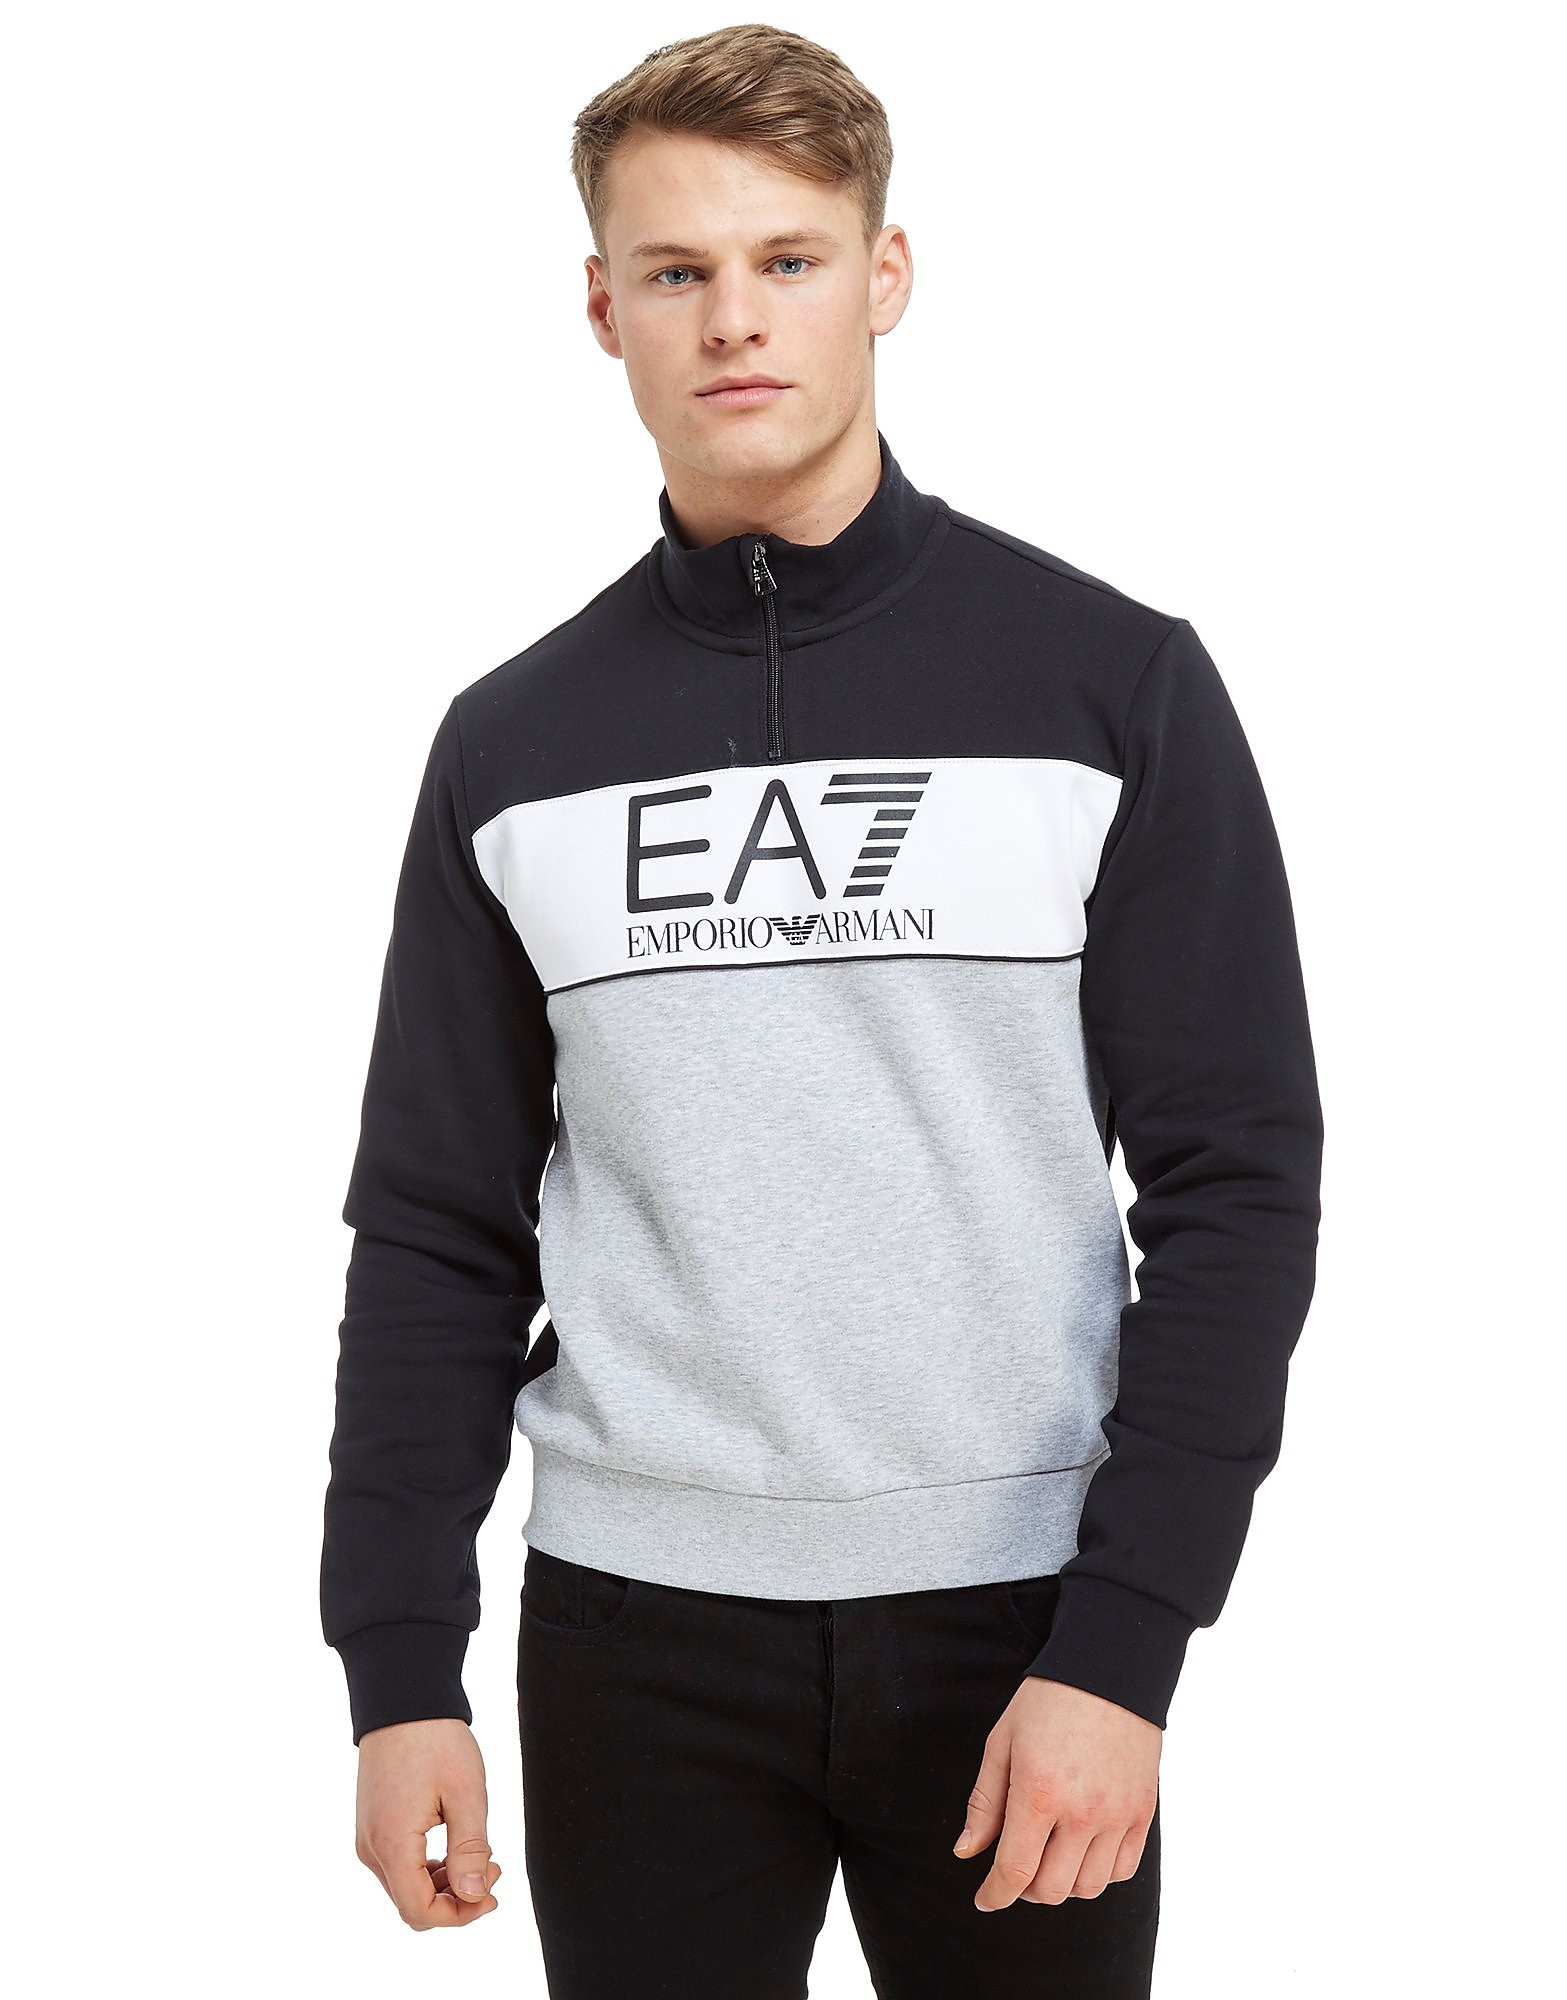 Emporio Armani EA7 1/4 Zip Colourblock Track Top